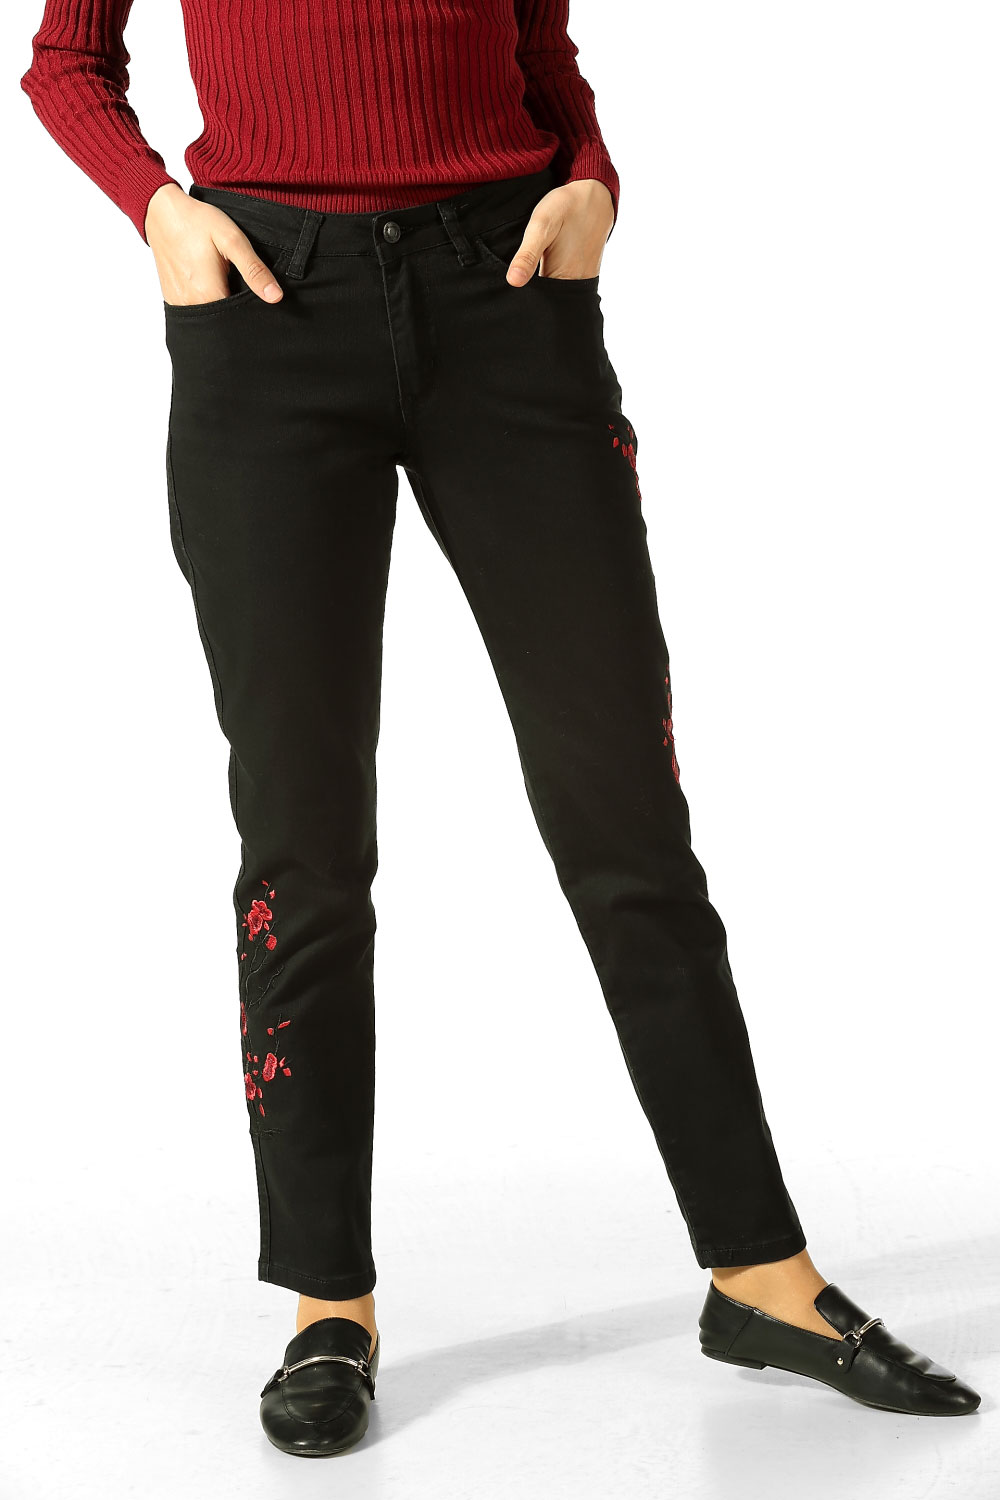 EMBROIDERED HIGH WAISTED HIJAB JEANS